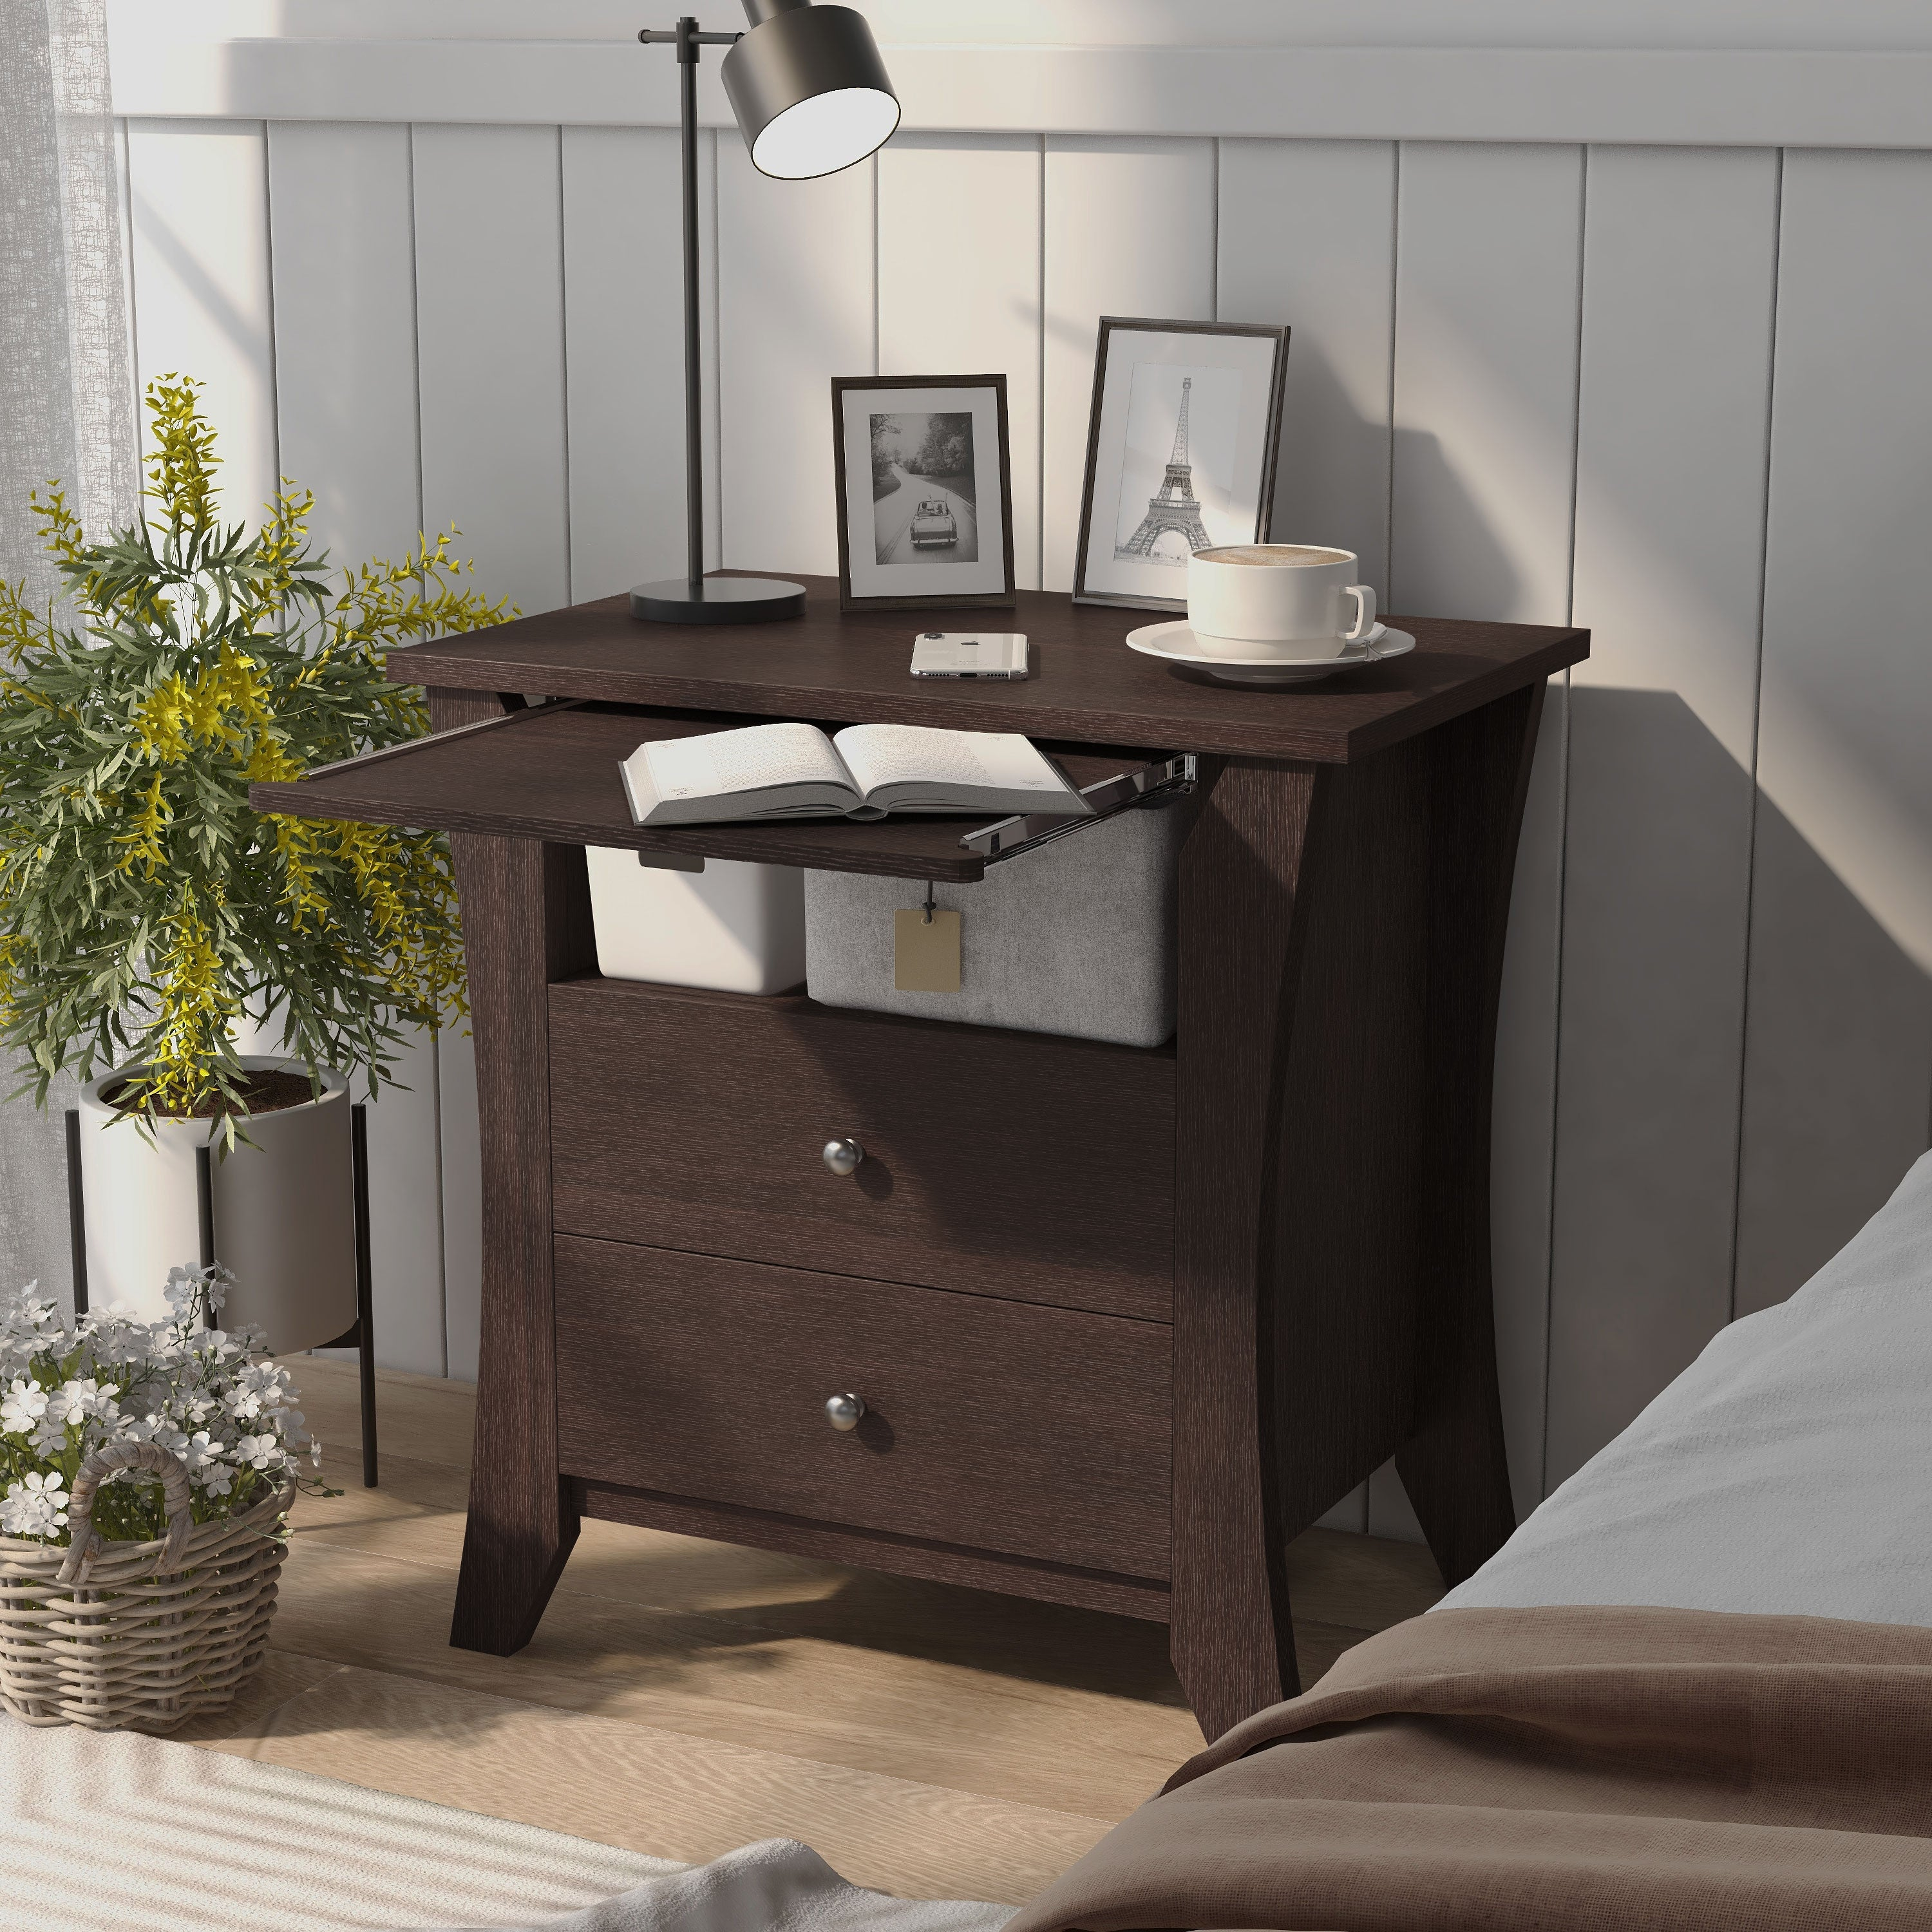 Furniture Of America Mendolla Modern Espresso 2 Drawer Nightstand On Sale Overstock 20460884